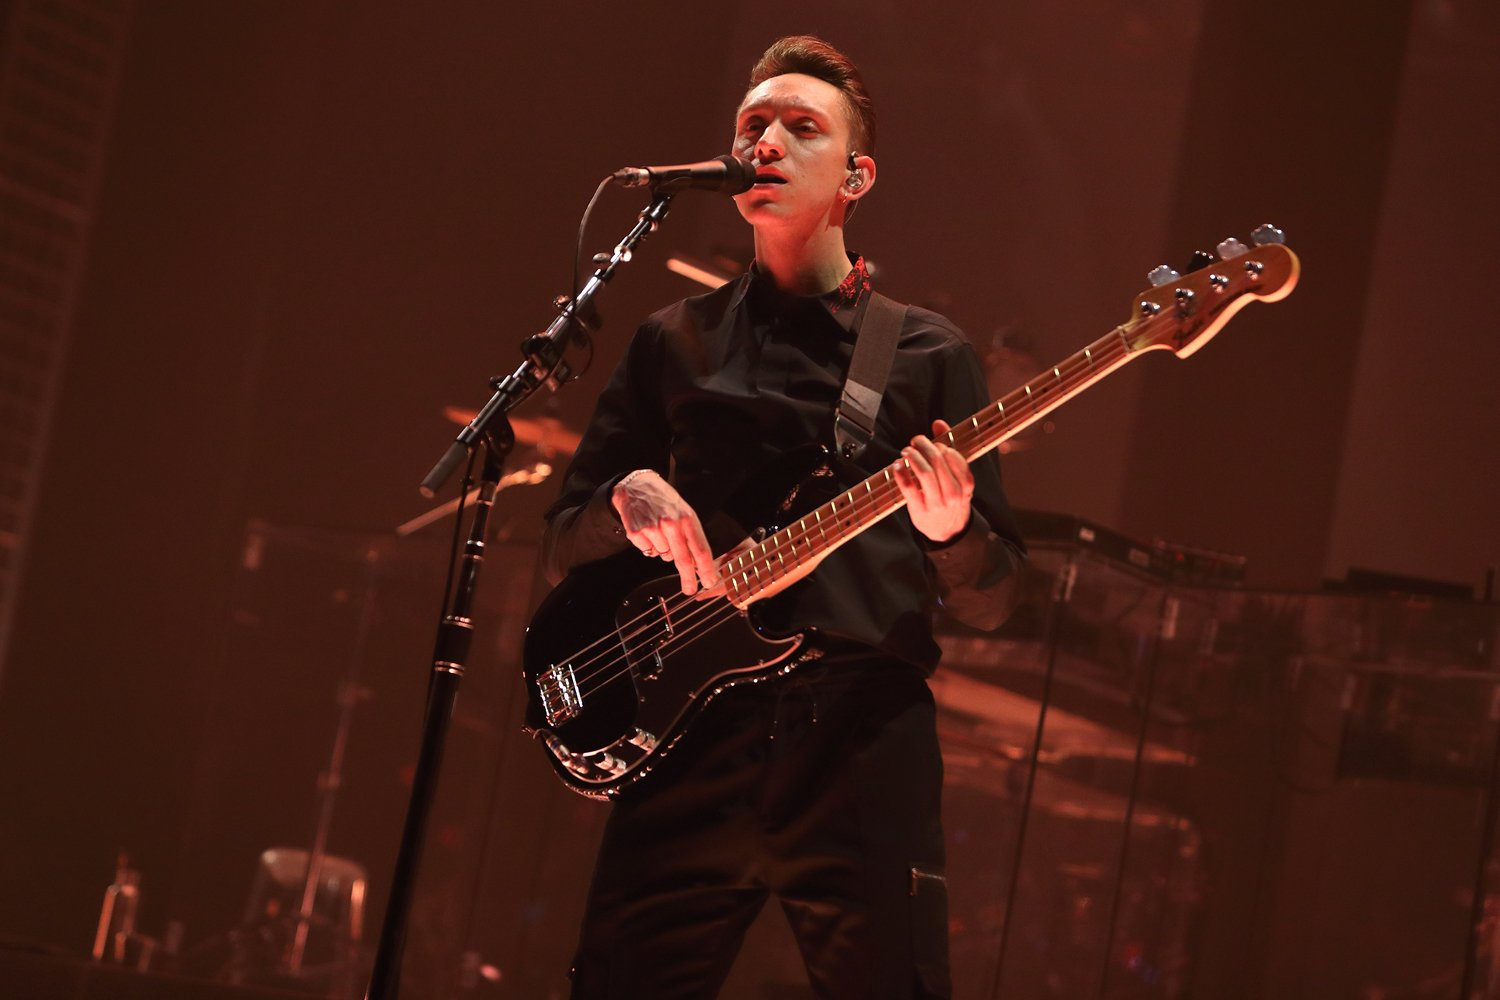 Capturing The xx at Brixton Academy